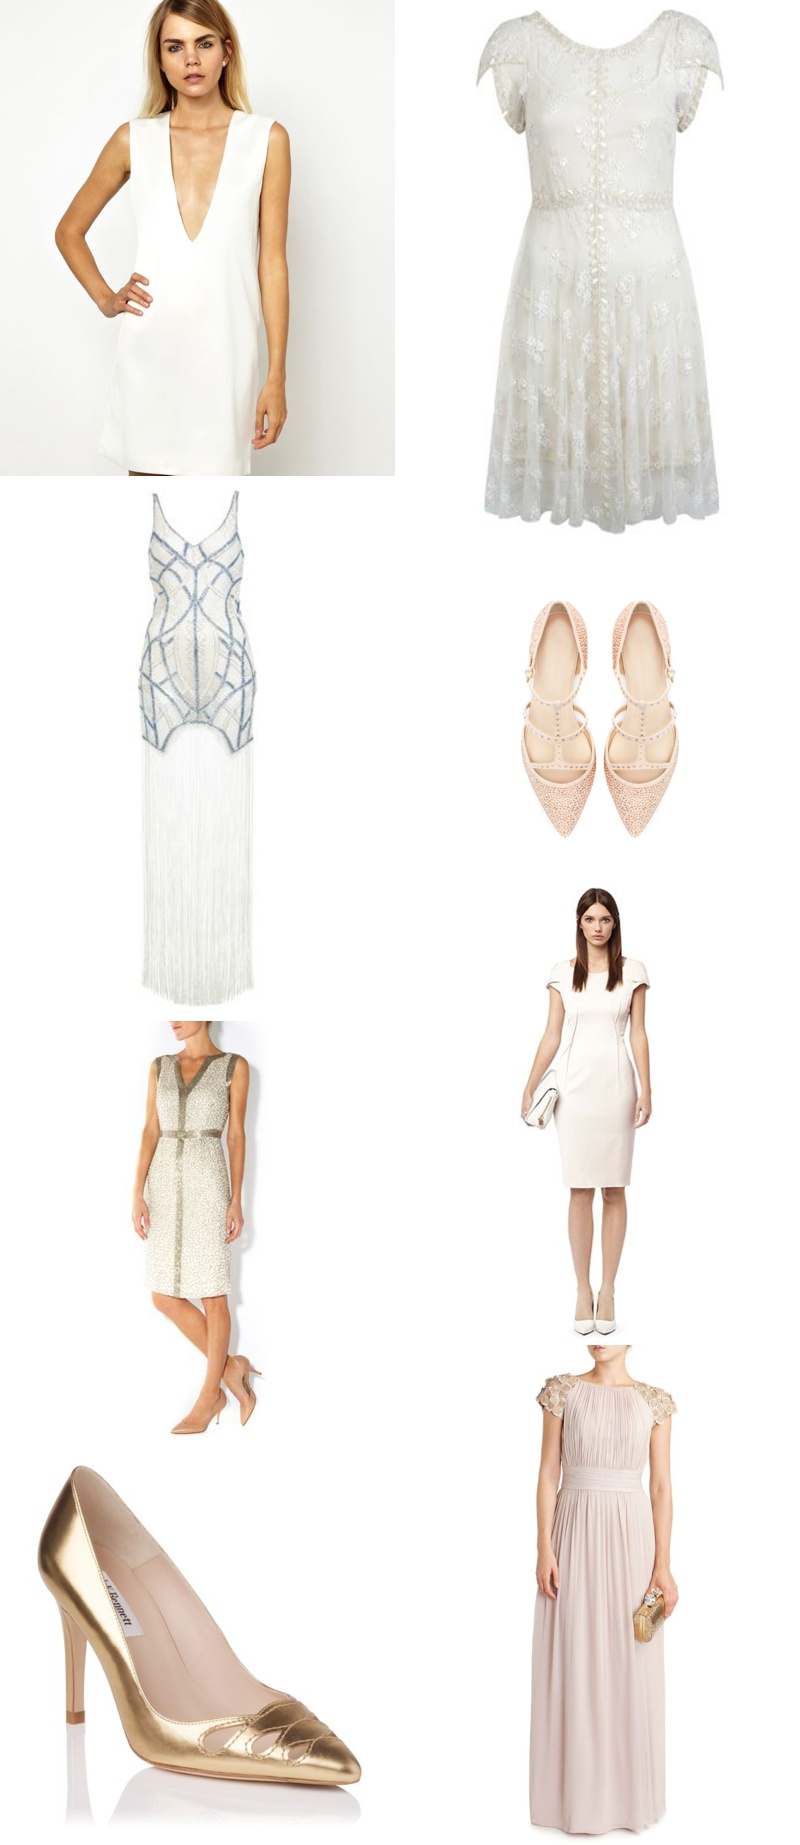 Zara Bridesmaid Dresses Uk 28